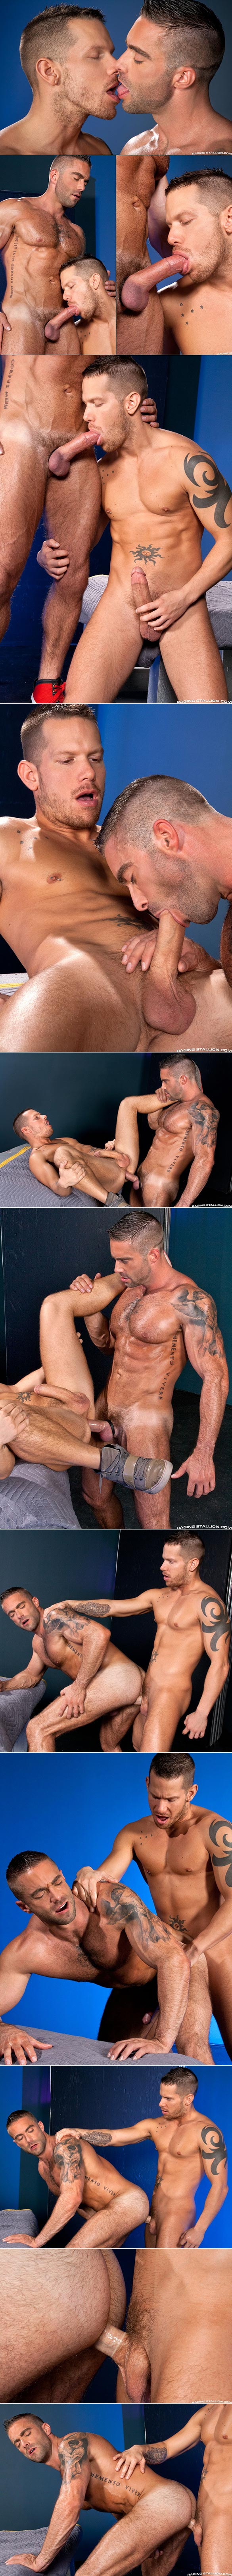 "RagingStallion: Shane Frost and Jake Genesis pound each other in ""Powerload"""